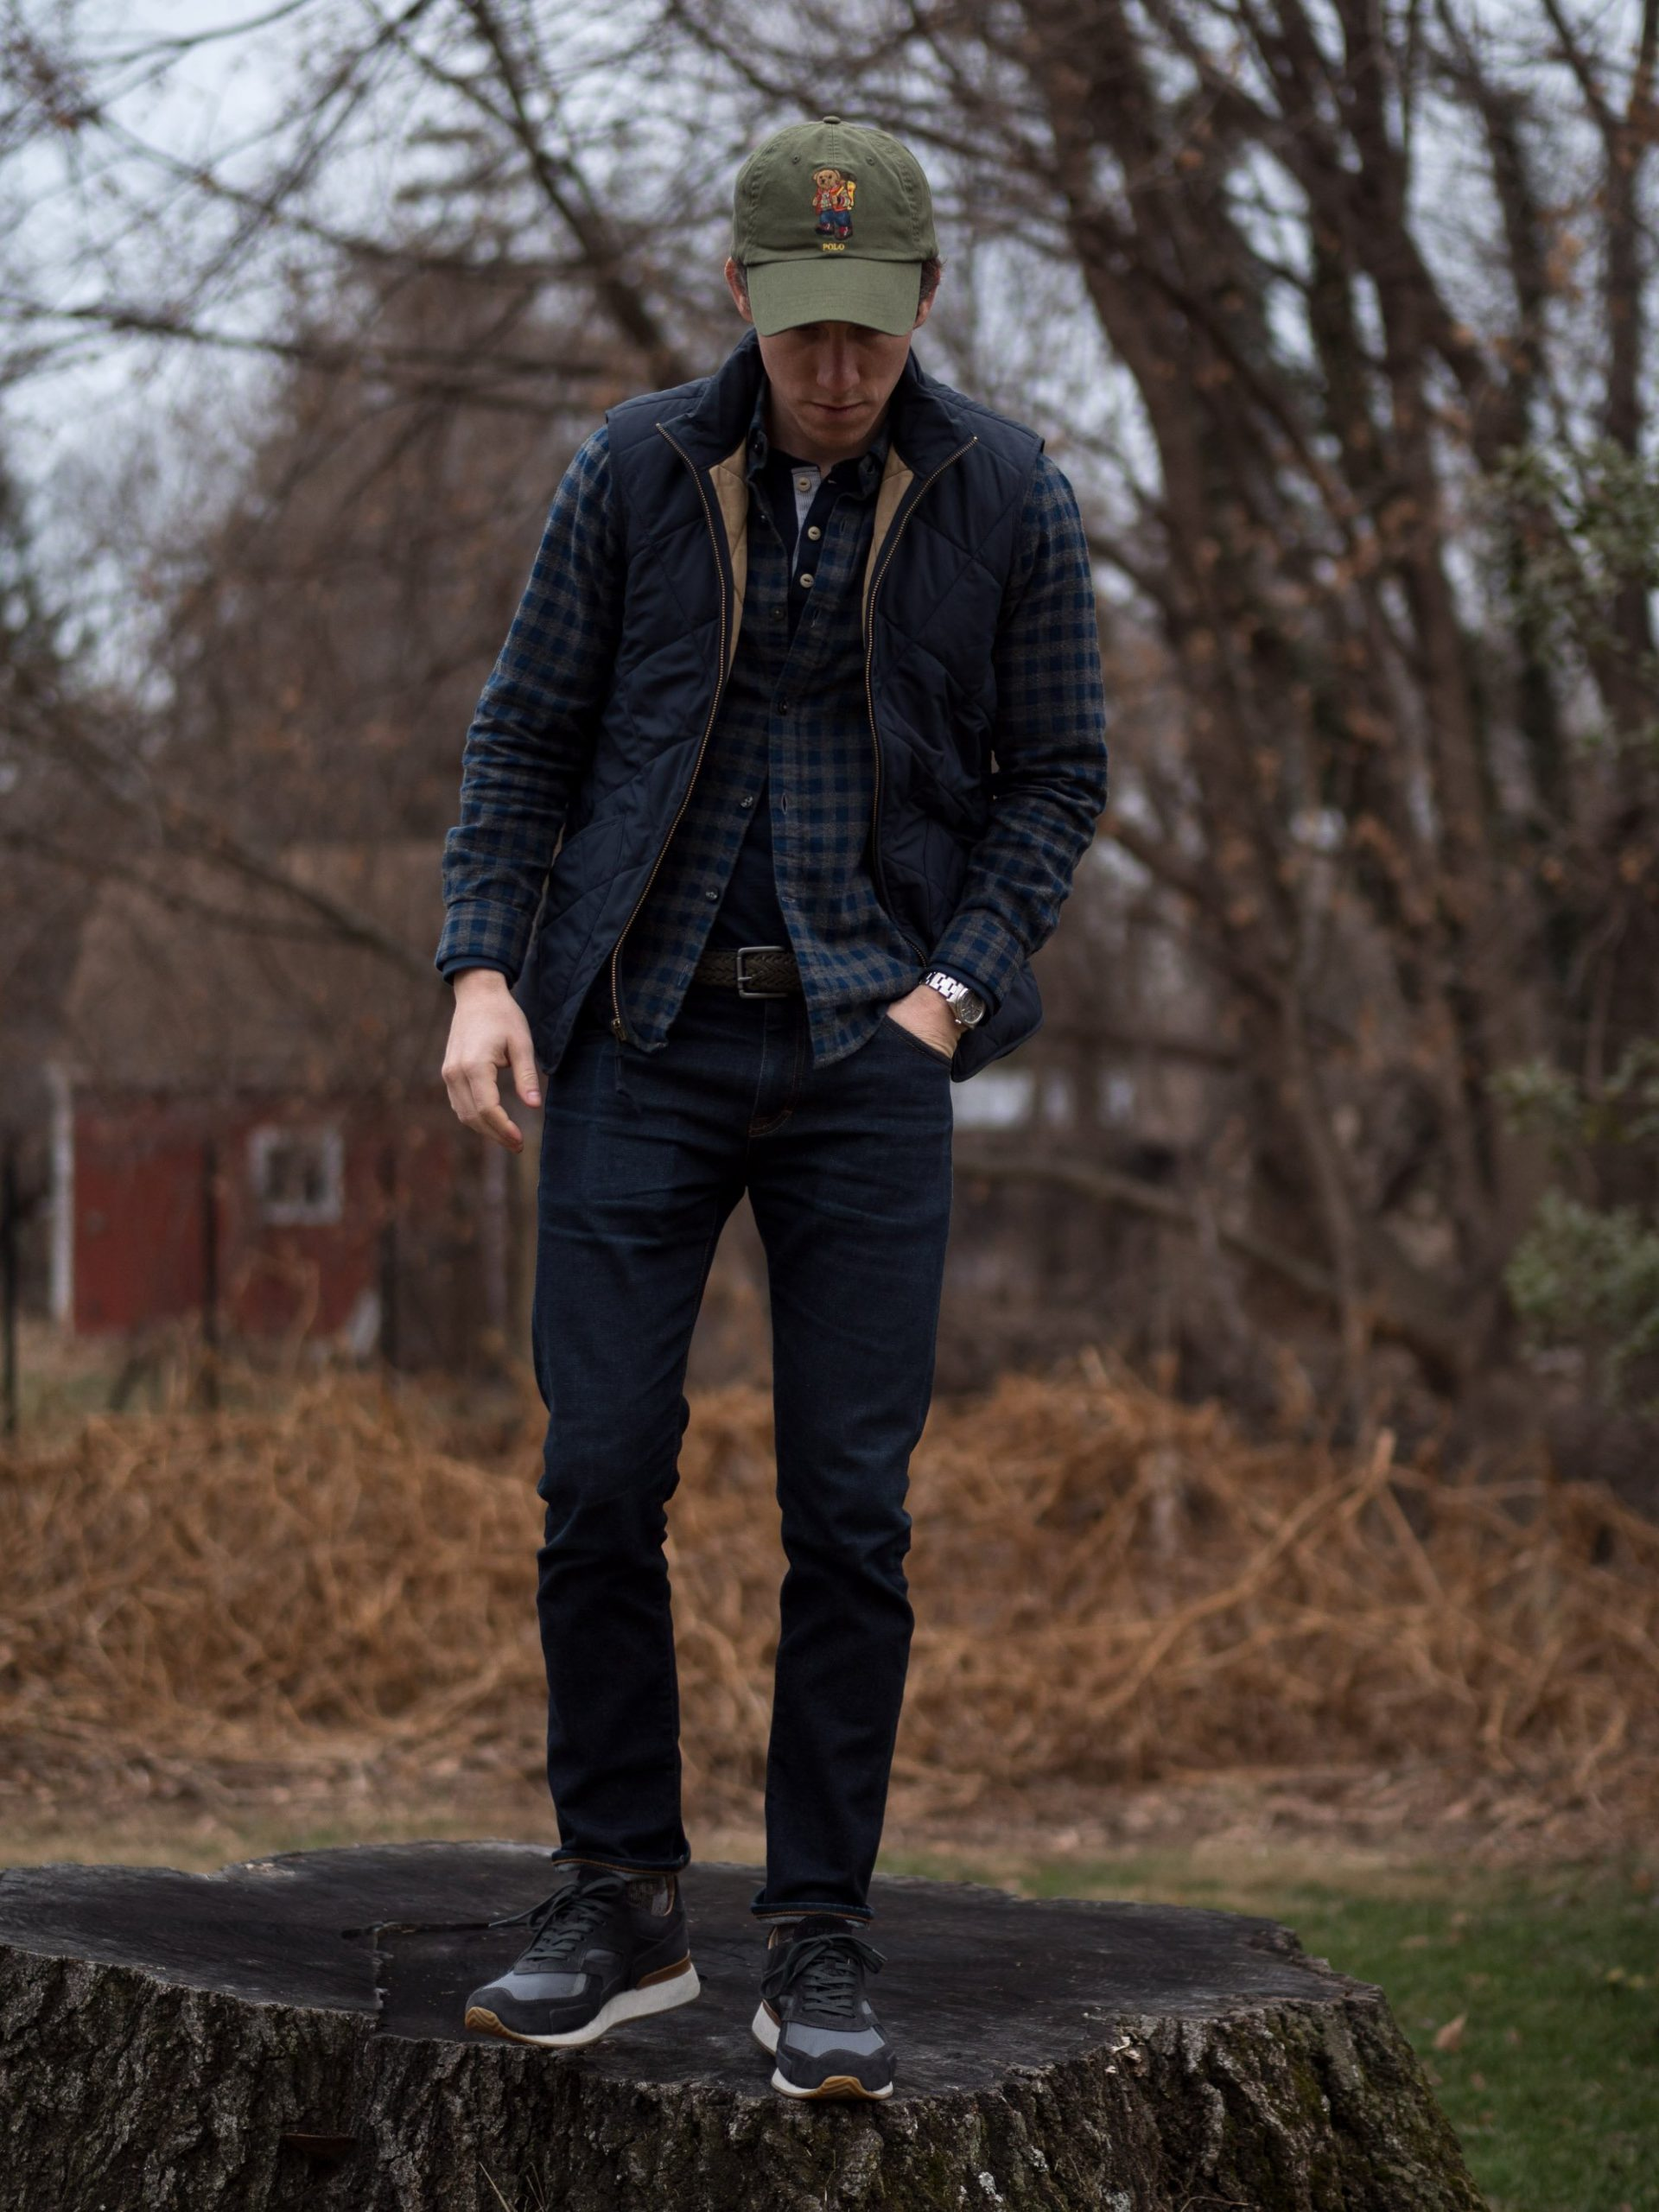 Flannel with field jacket